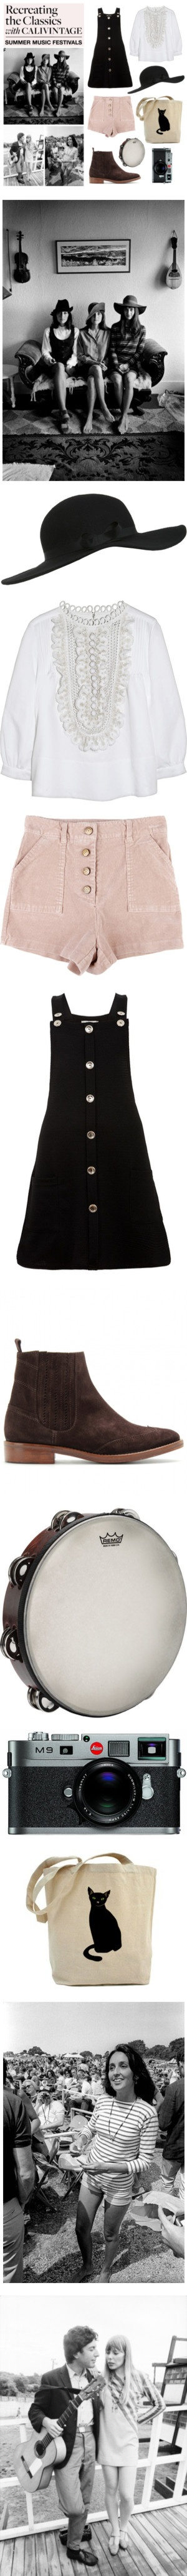 """""""calivintage Recreates the Classics: Summer Music Festivals"""" by calivintage ❤ liked on Polyvore"""